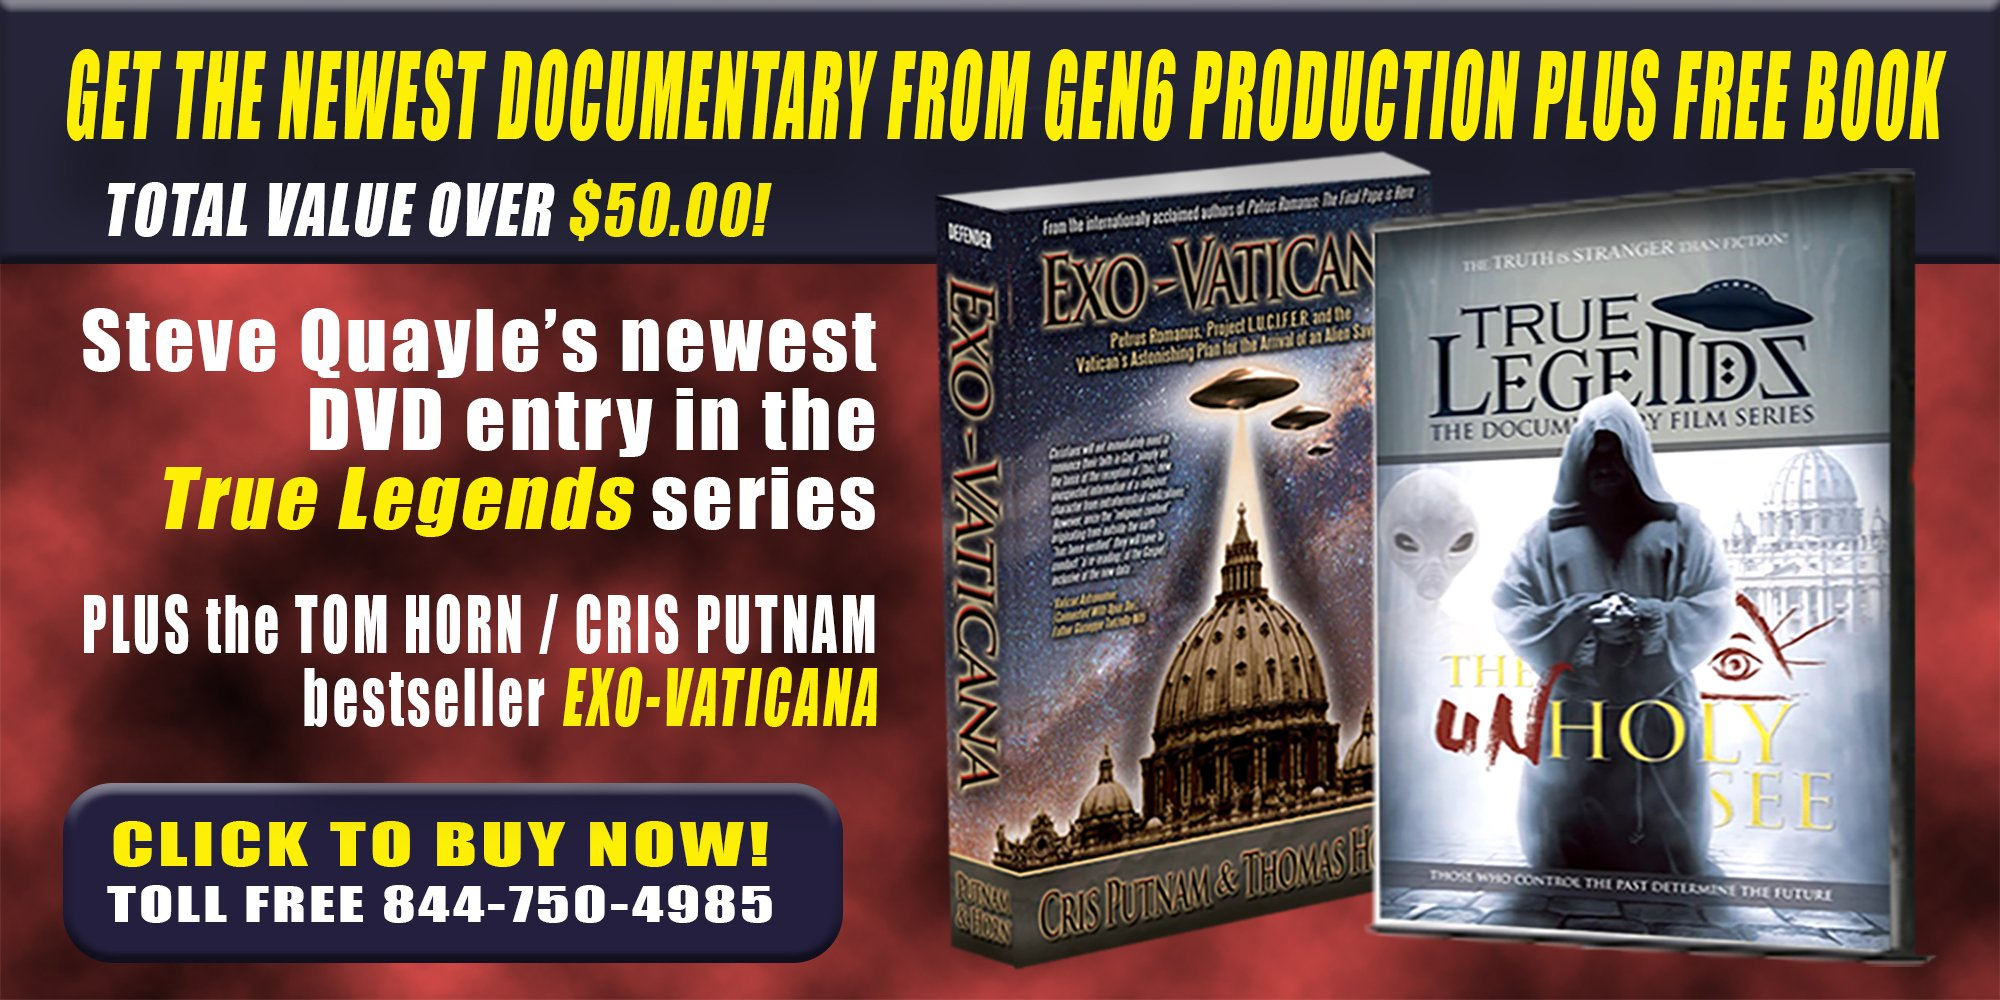 FREE BOOK WITH THE NEW DOCUMENTARY FROM STEVE QUAYLE AND GEN6 PRODUCTIONS!